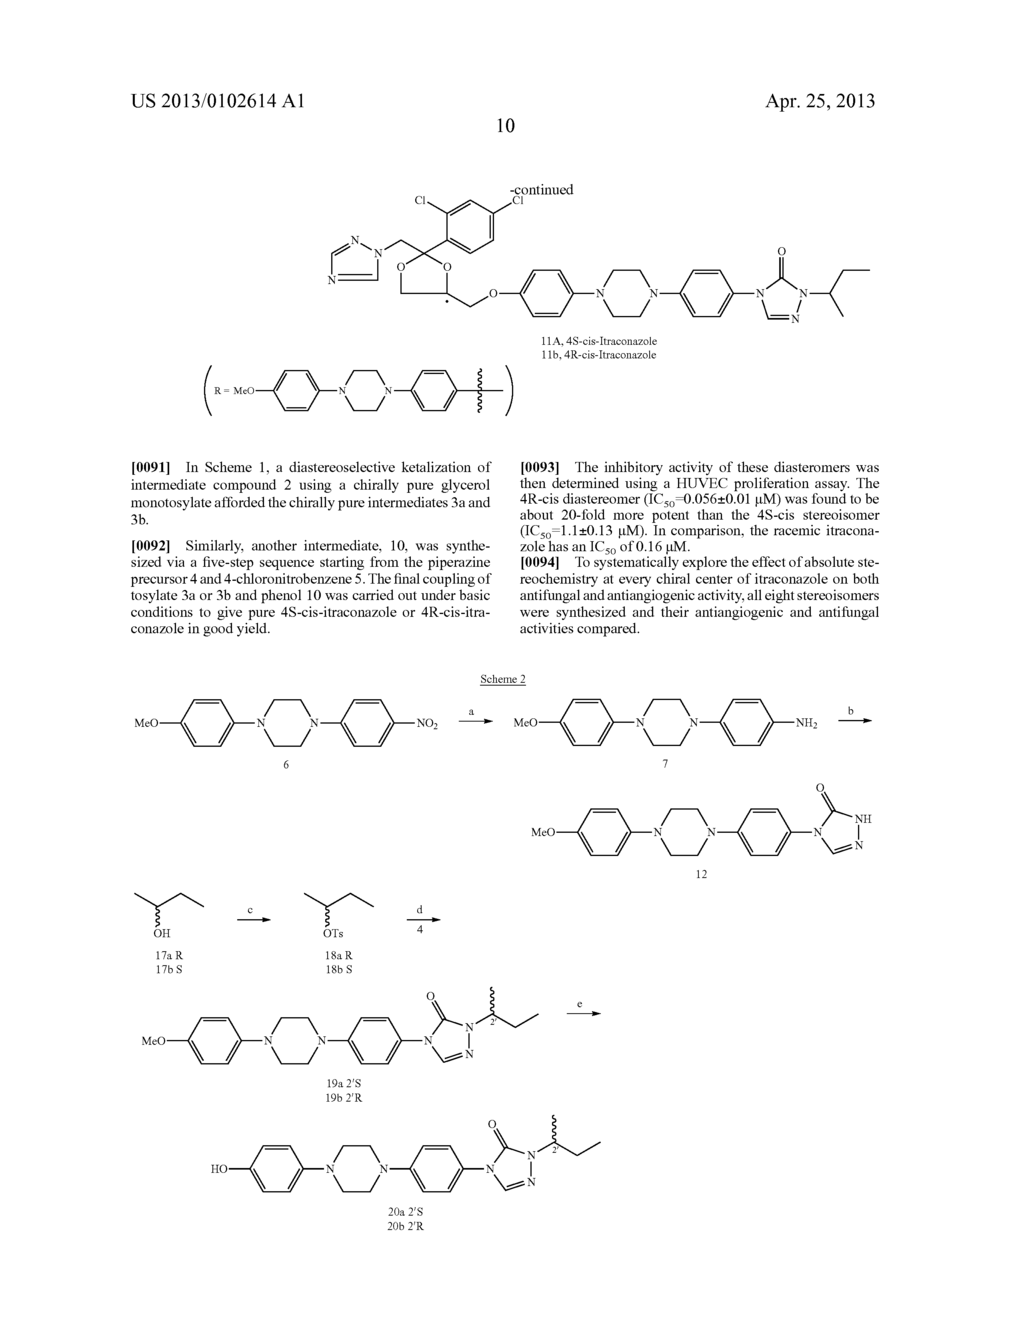 CHIRALLY PURE ISOMERS OF ITRACONAZOLE FOR USE AS ANGIOGENESIS INHIBITORS - diagram, schematic, and image 20